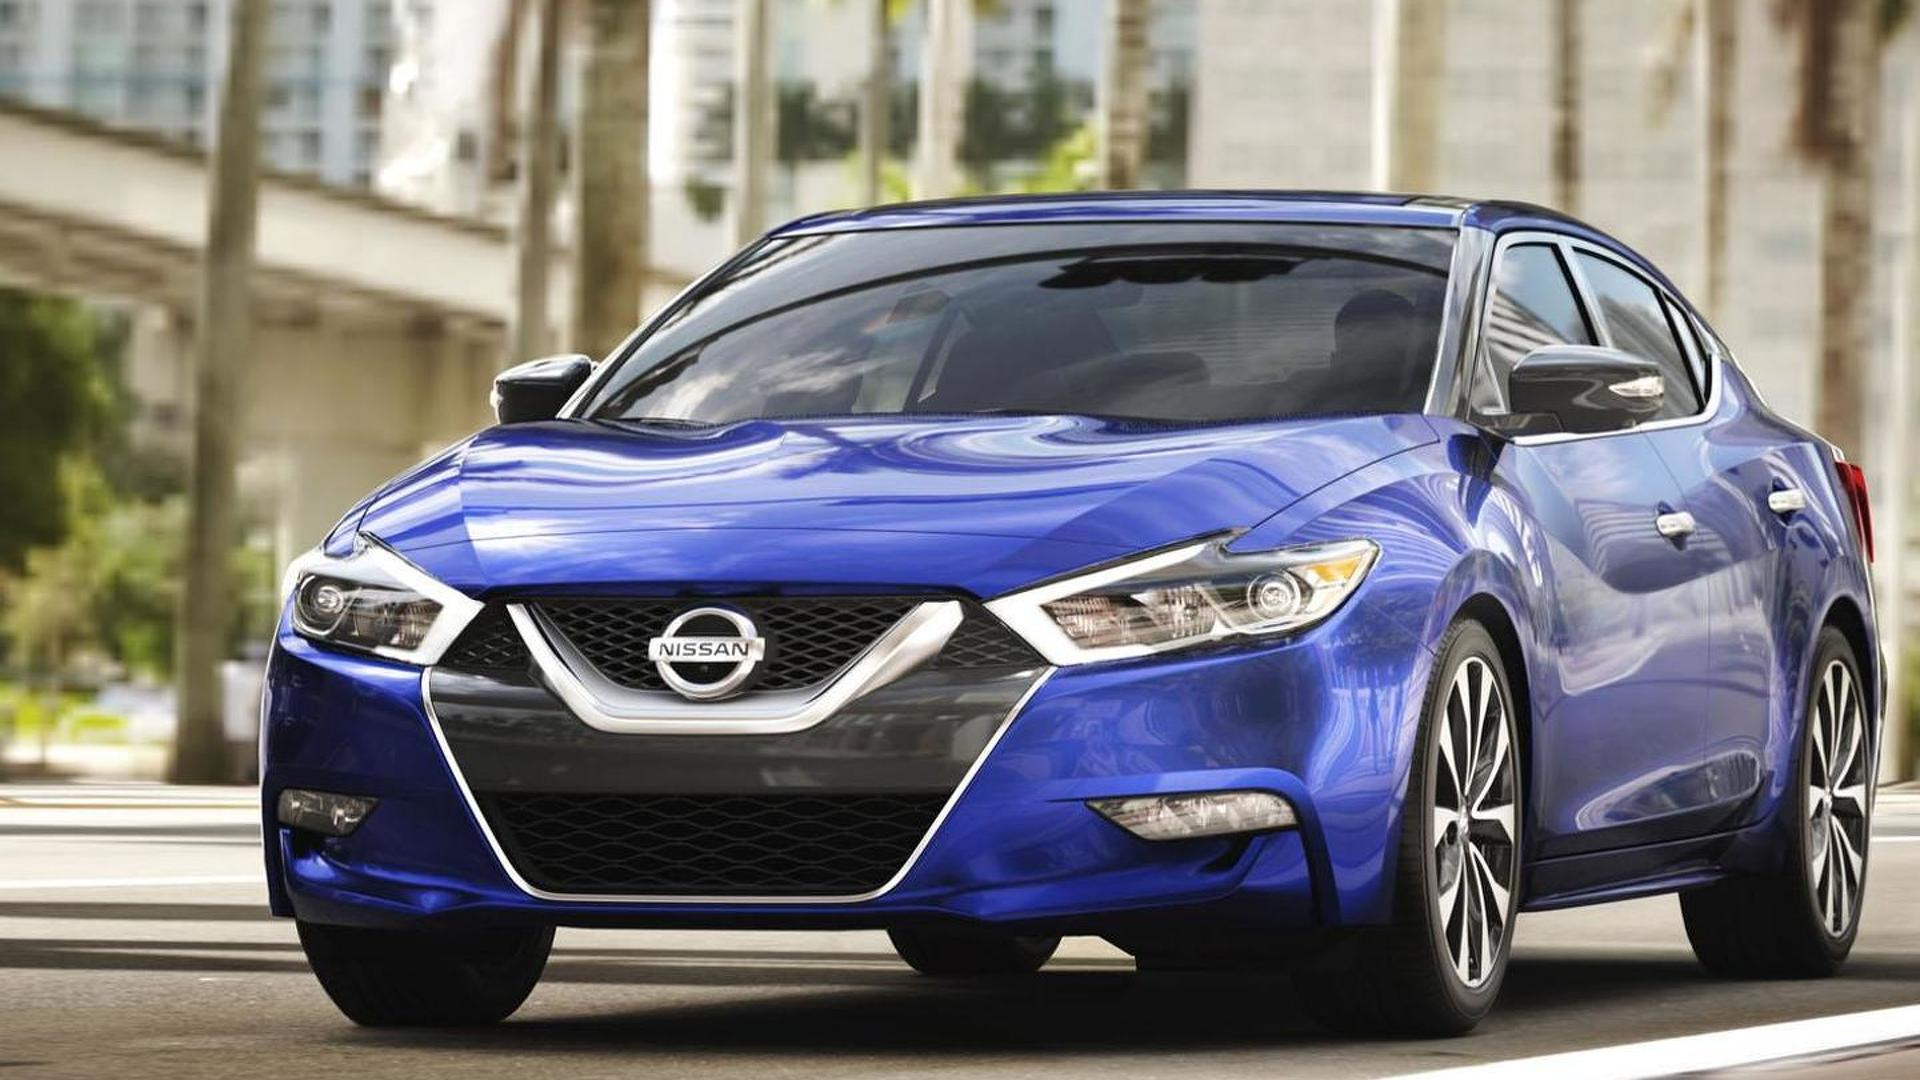 Nissan wants you to believe the 2016 Maxima is a better sports sedan than the BMW 328i [videos]